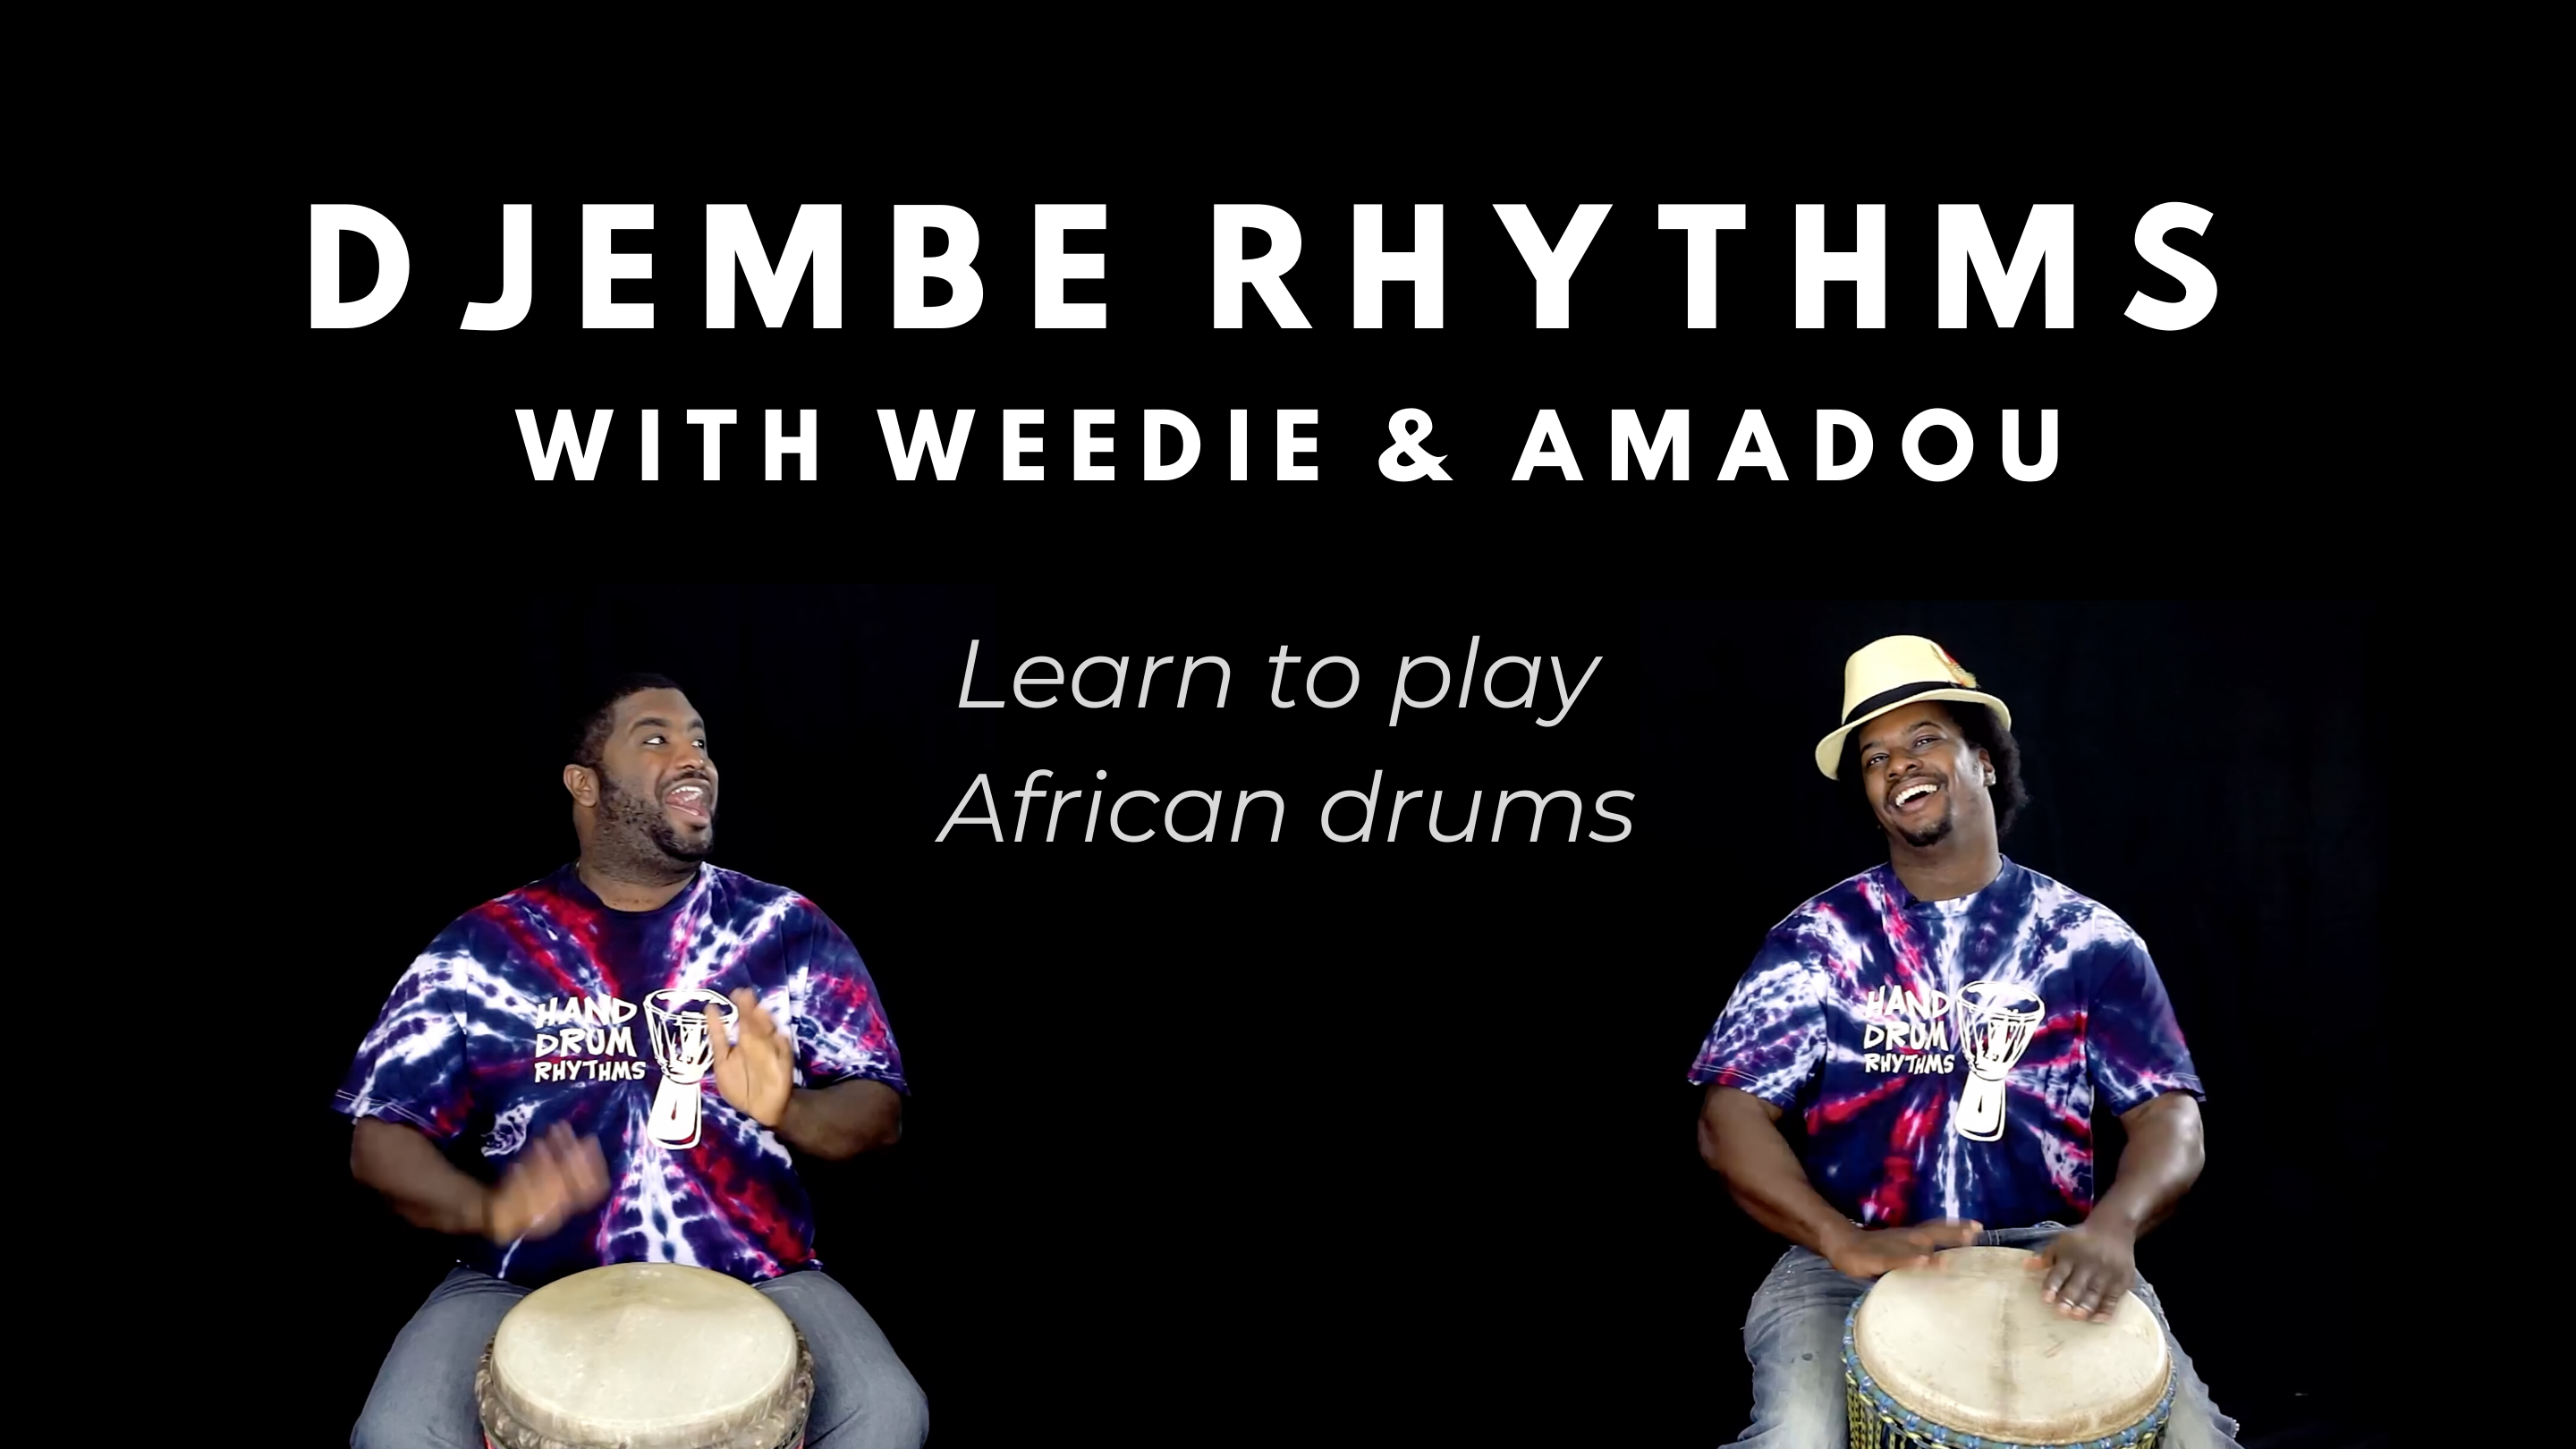 Djembe Rhythms with Weedie & Amadou